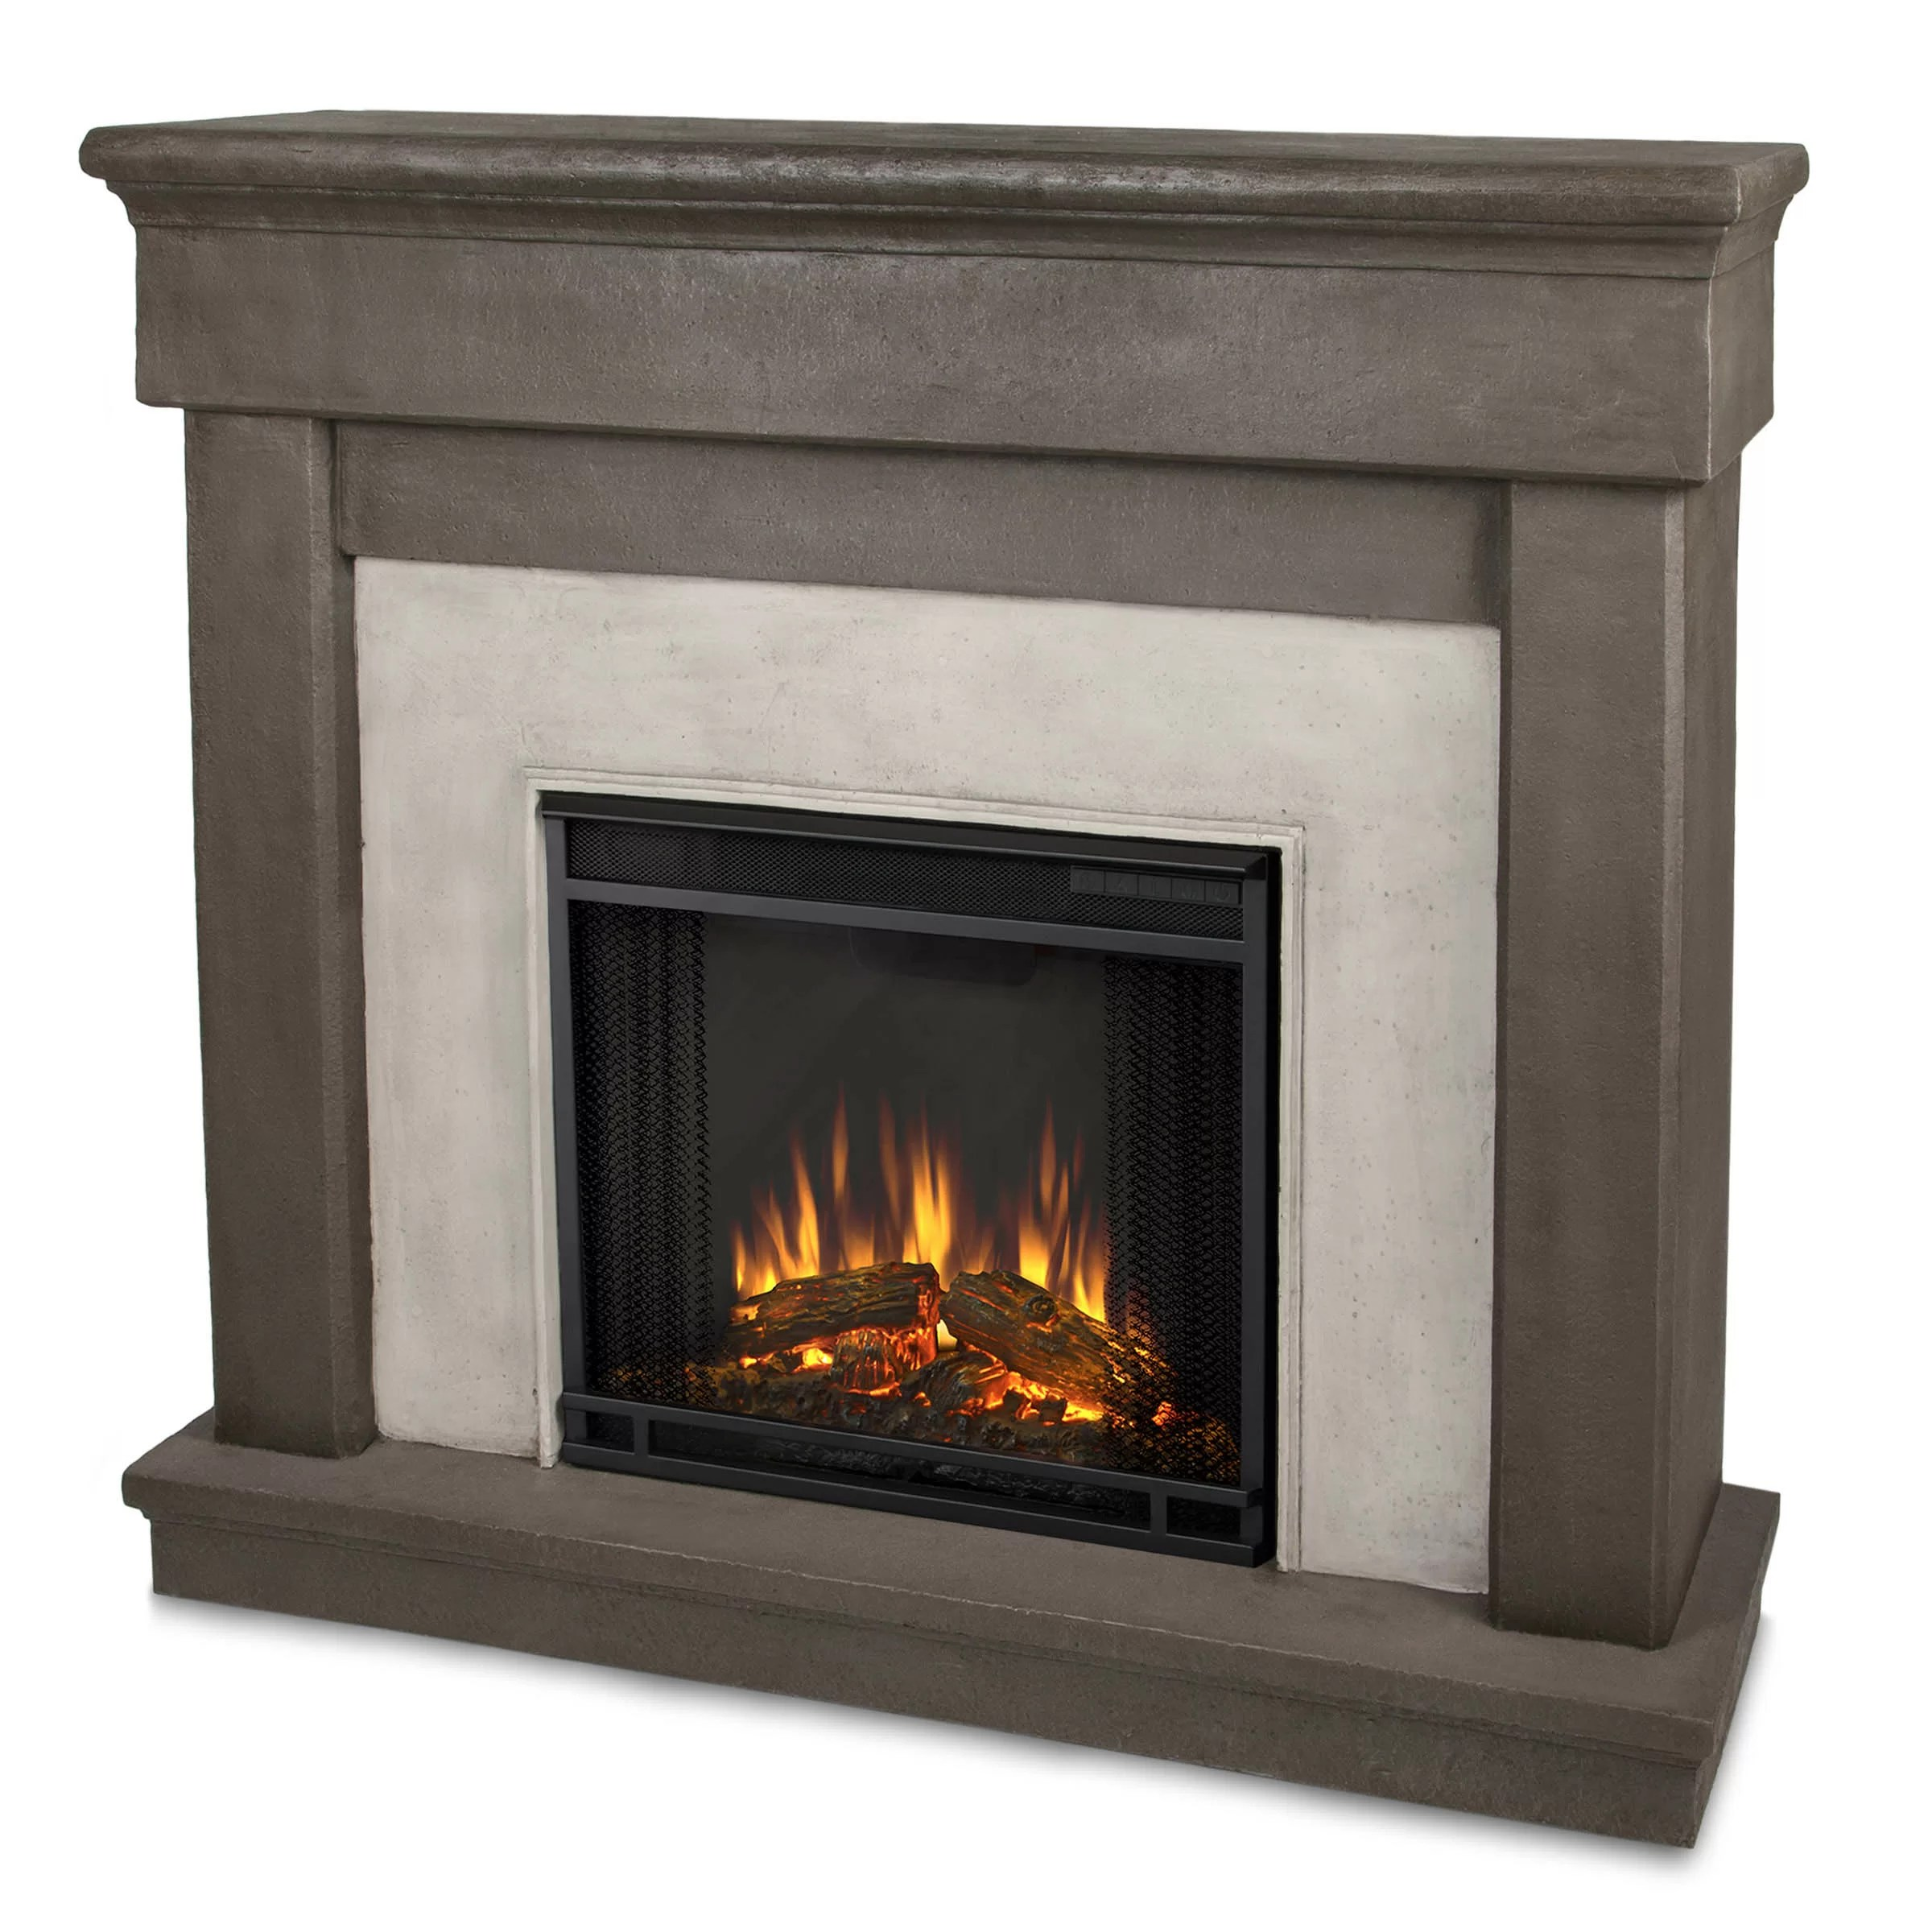 Real Flame Cast Mantel Cascade Electric Fireplace